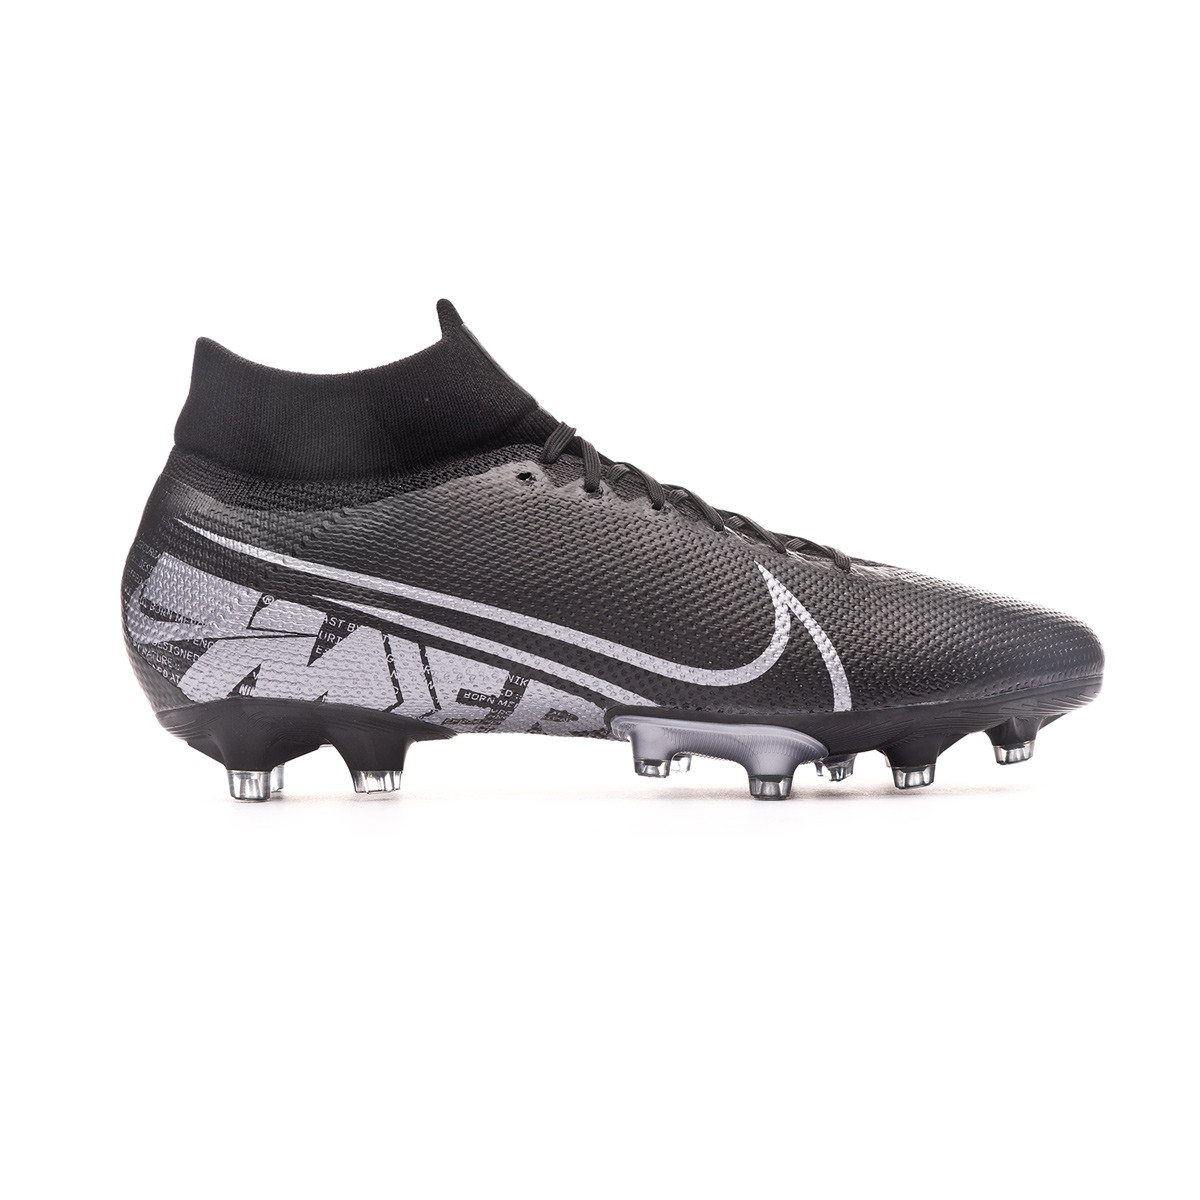 Persona especial atleta silueta  Football Boots Nike Mercurial Superfly VII Pro AG-Pro Black-Metallic cool  grey - Football store Fútbol Emotion